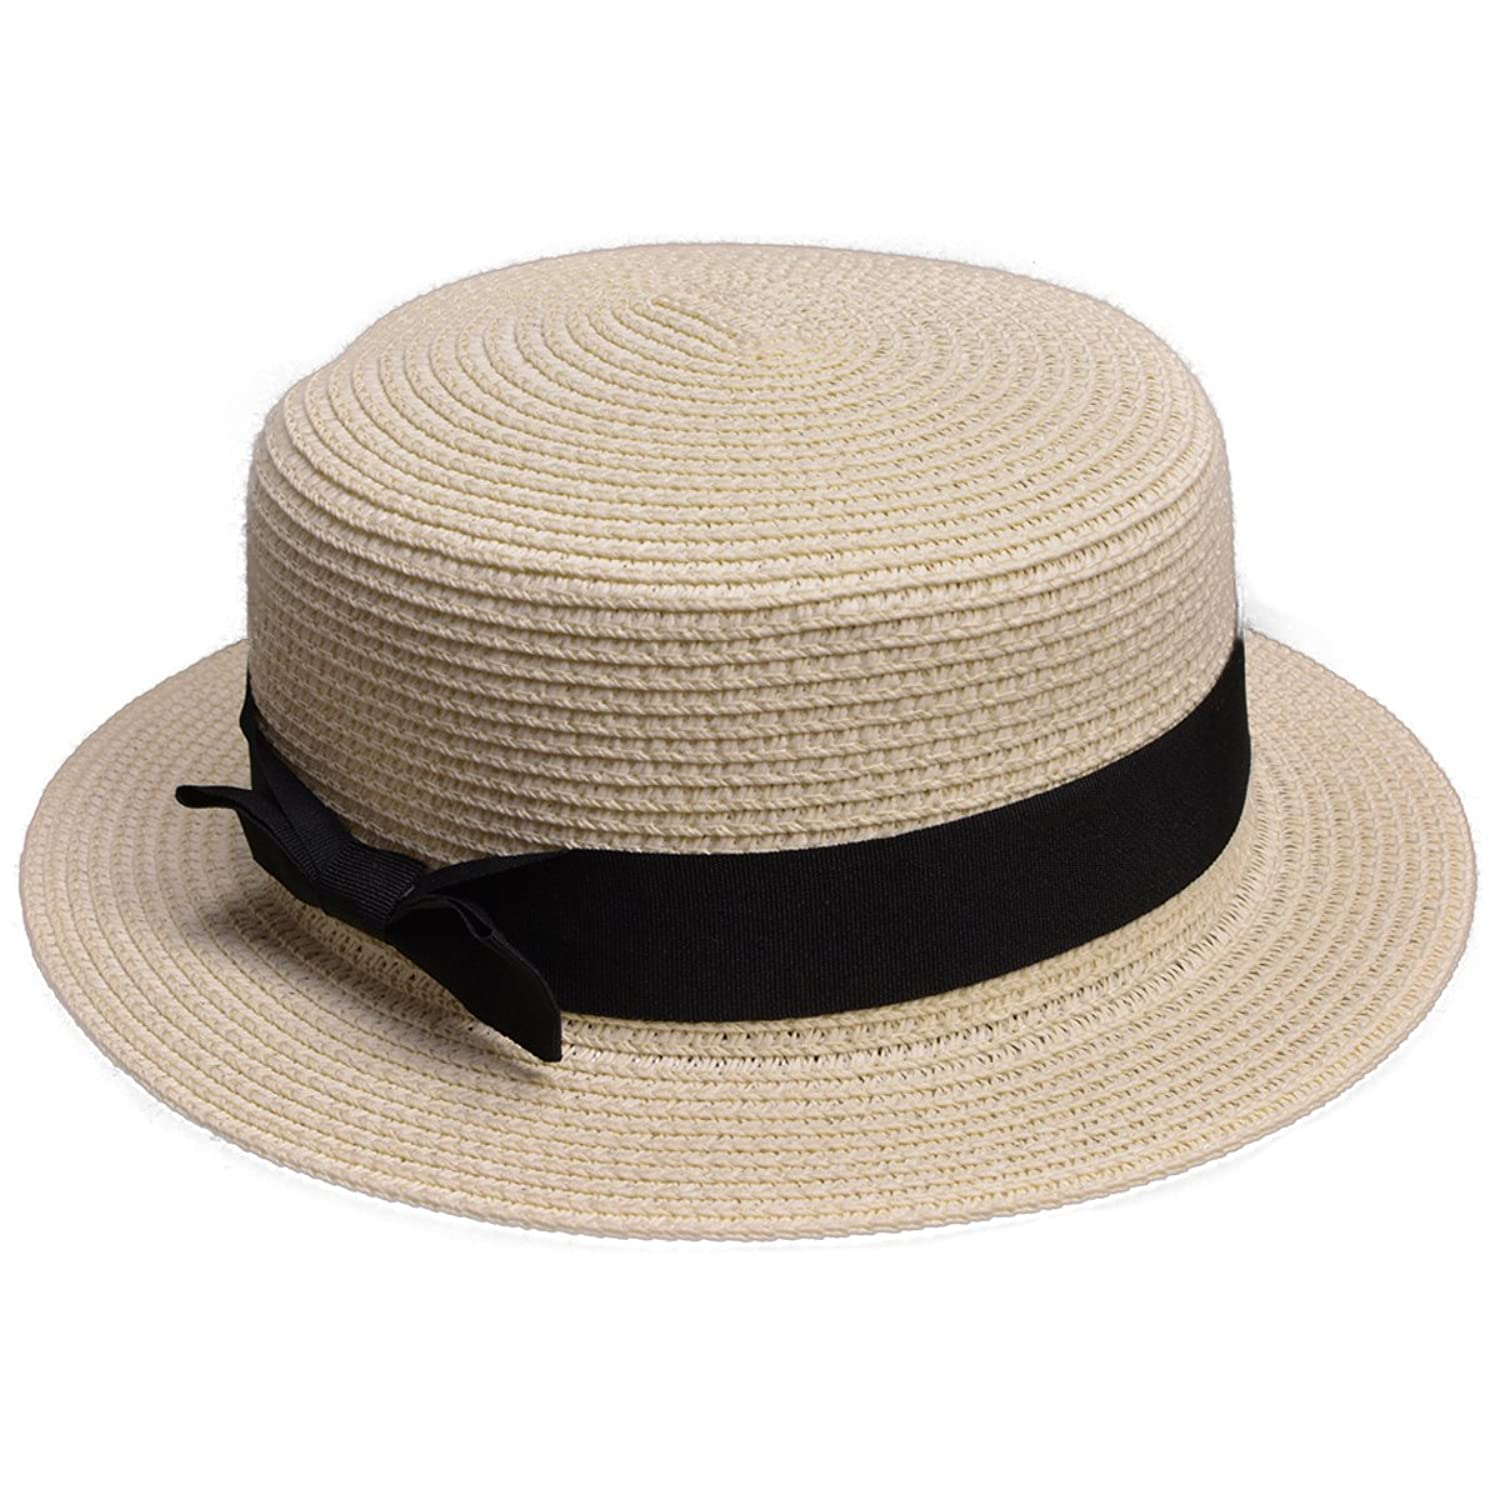 Edwardian Hats, Titanic Hats, Tea Party Hats Lawliet Womens Straw Boater Hat Fedora Panama Flat Top Ribbon Summer A456 $10.99 AT vintagedancer.com